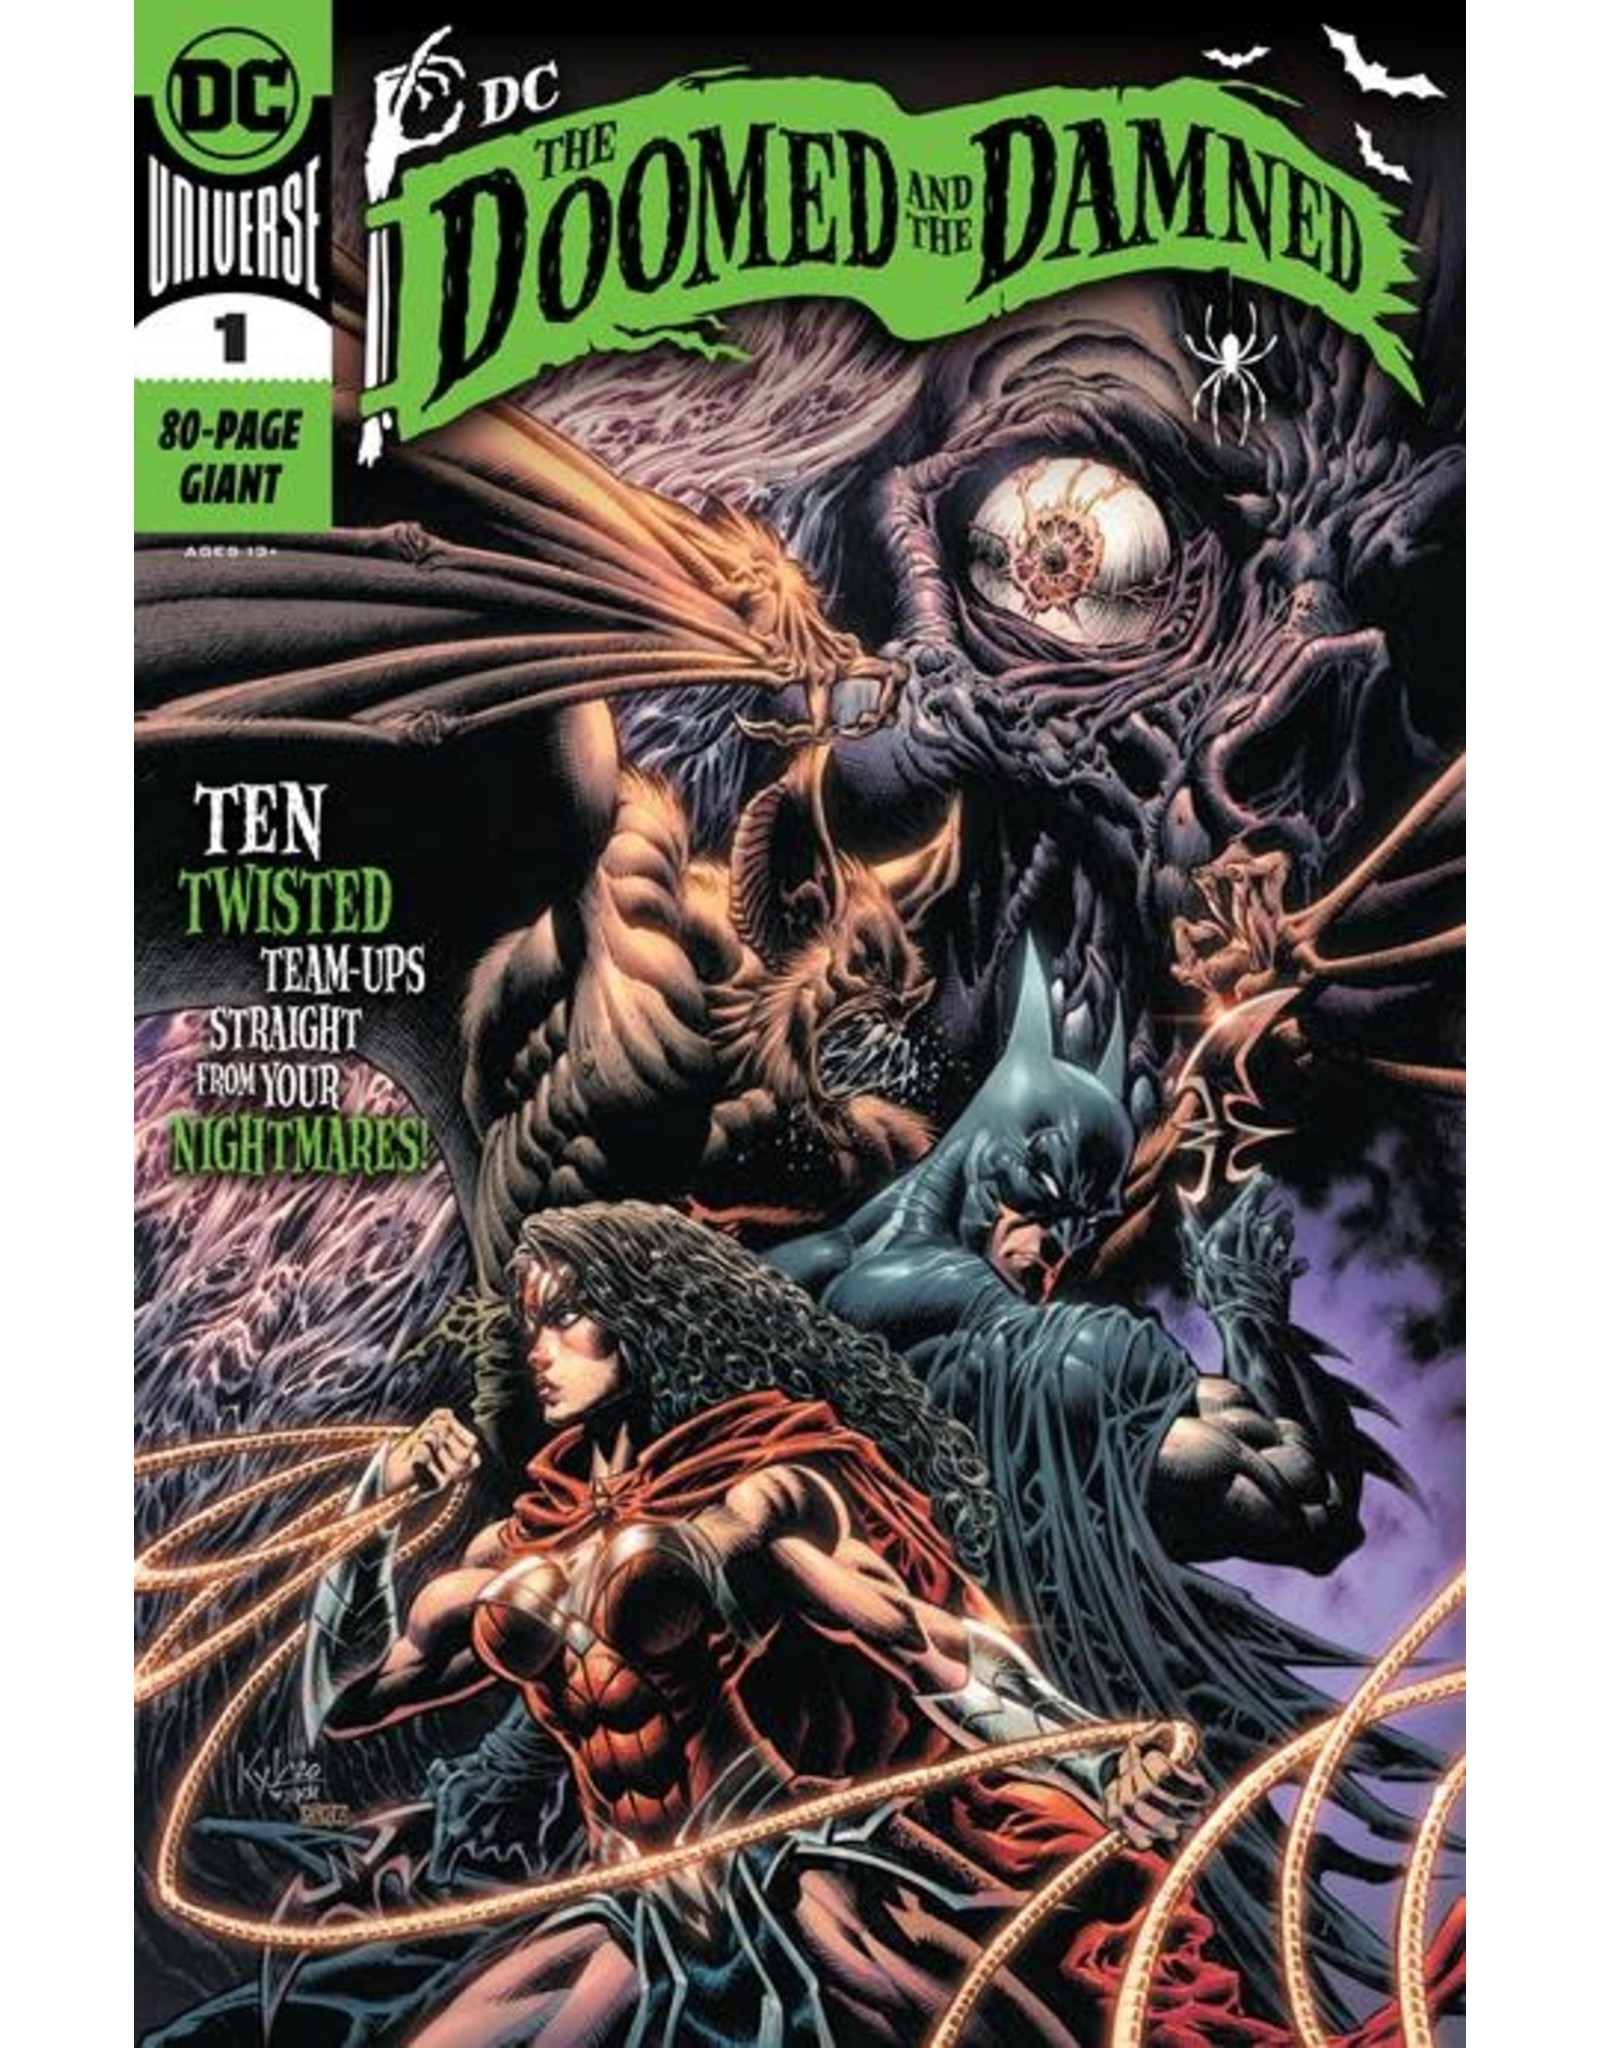 DC Comics DC THE DOOMED AND THE DAMNED #1 (ONE SHOT)